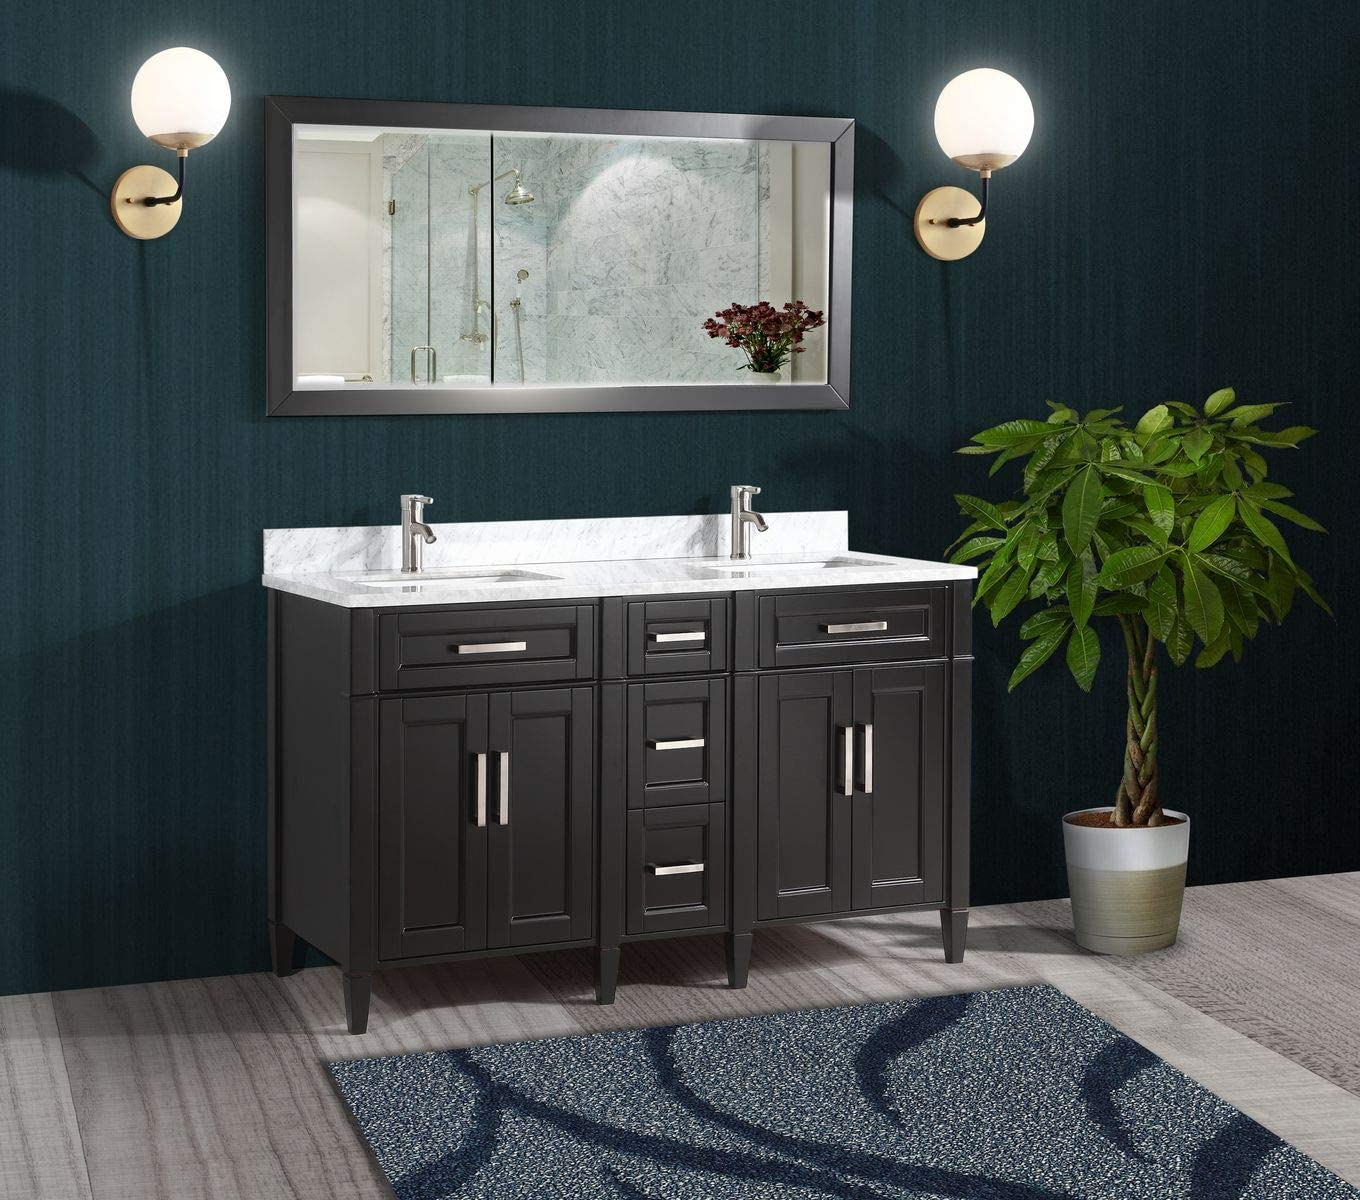 Buy Vanity Art 60 Inches Double Sink Bathroom Vanity Set Carrara Marble Stone Top Dove Tailed Drawers Soft Closing Doors Under Mount Rectangle Sink Cabinet With Free Mirror Va2060 De Online In Germany B01ipyxwts